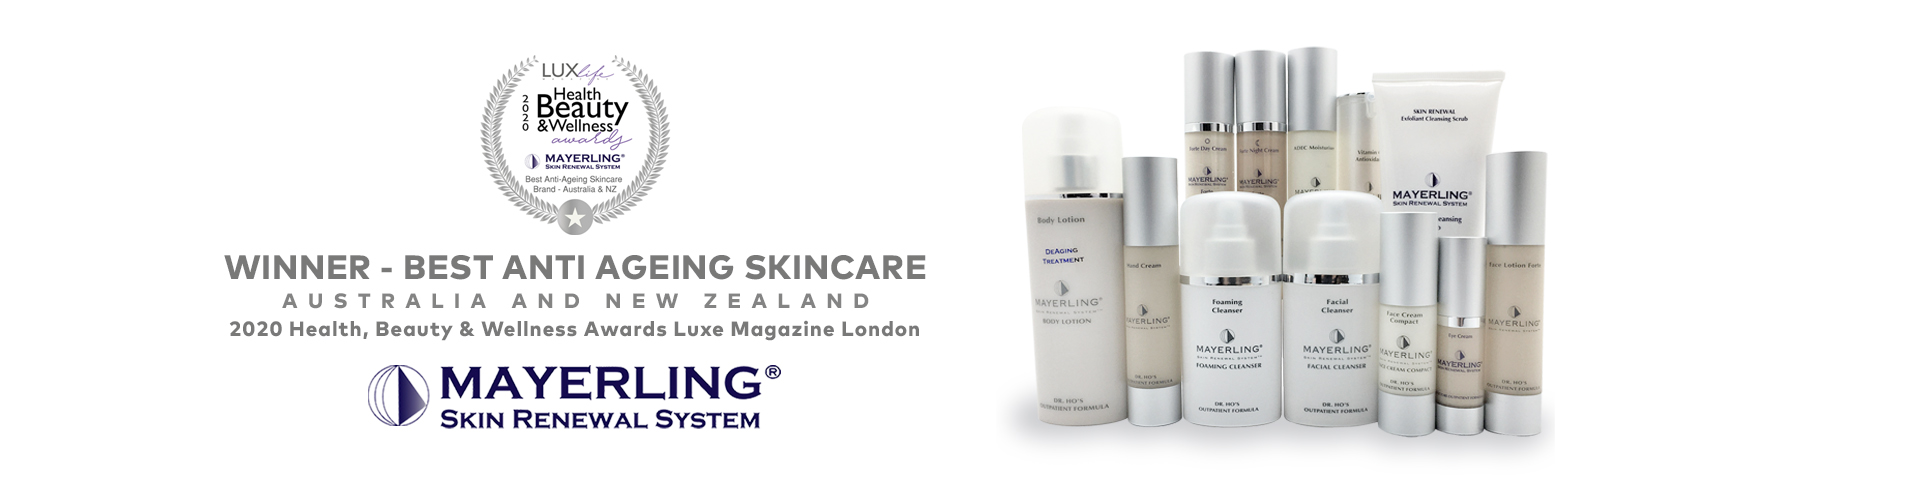 Find a Stockist image by Mayerling Skincare